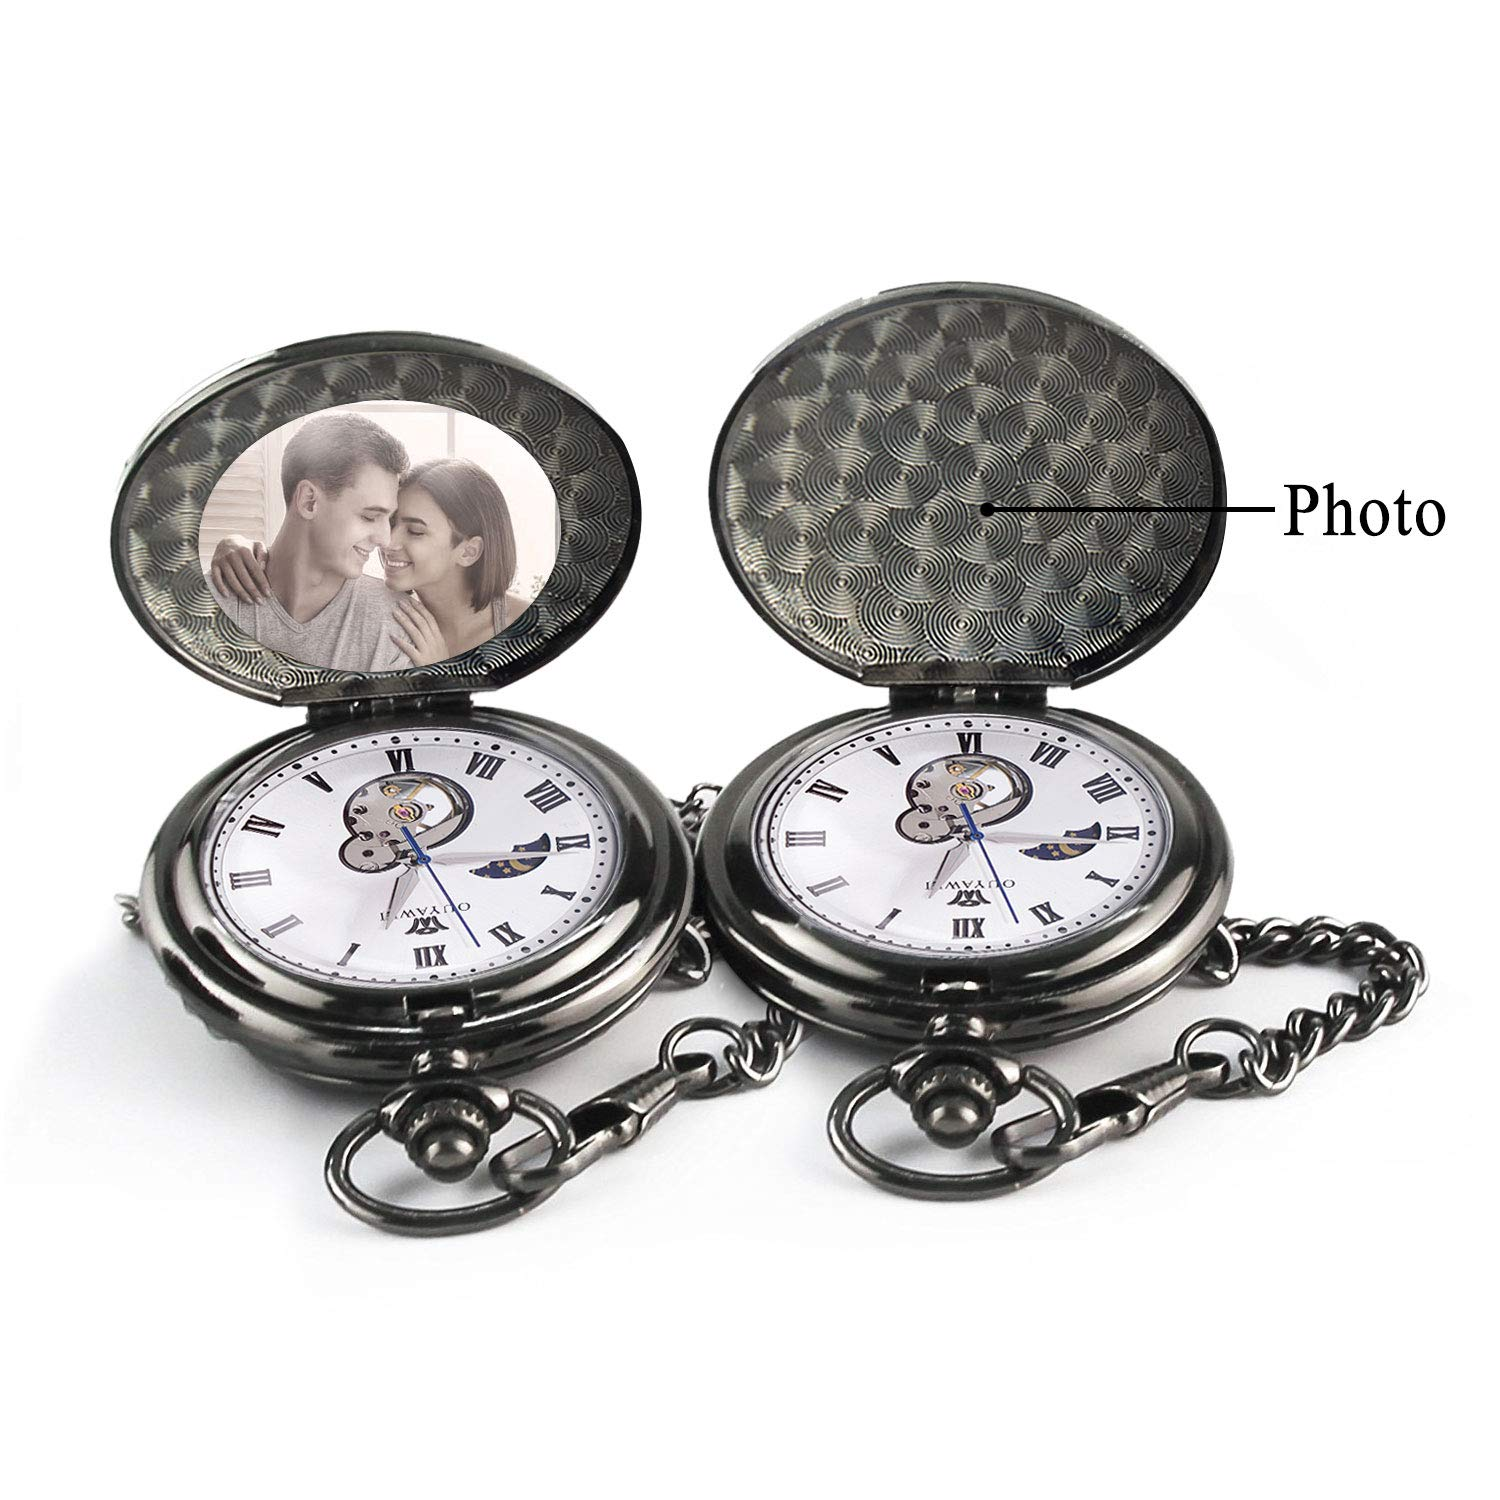 Mens Engraved Gifts for Valentine's Day, Anniversary Birthday Graduation Christmas Personalized Mechanical Pocket Watch with Gift Box (The Day I met You) by Ginasy (Image #3)